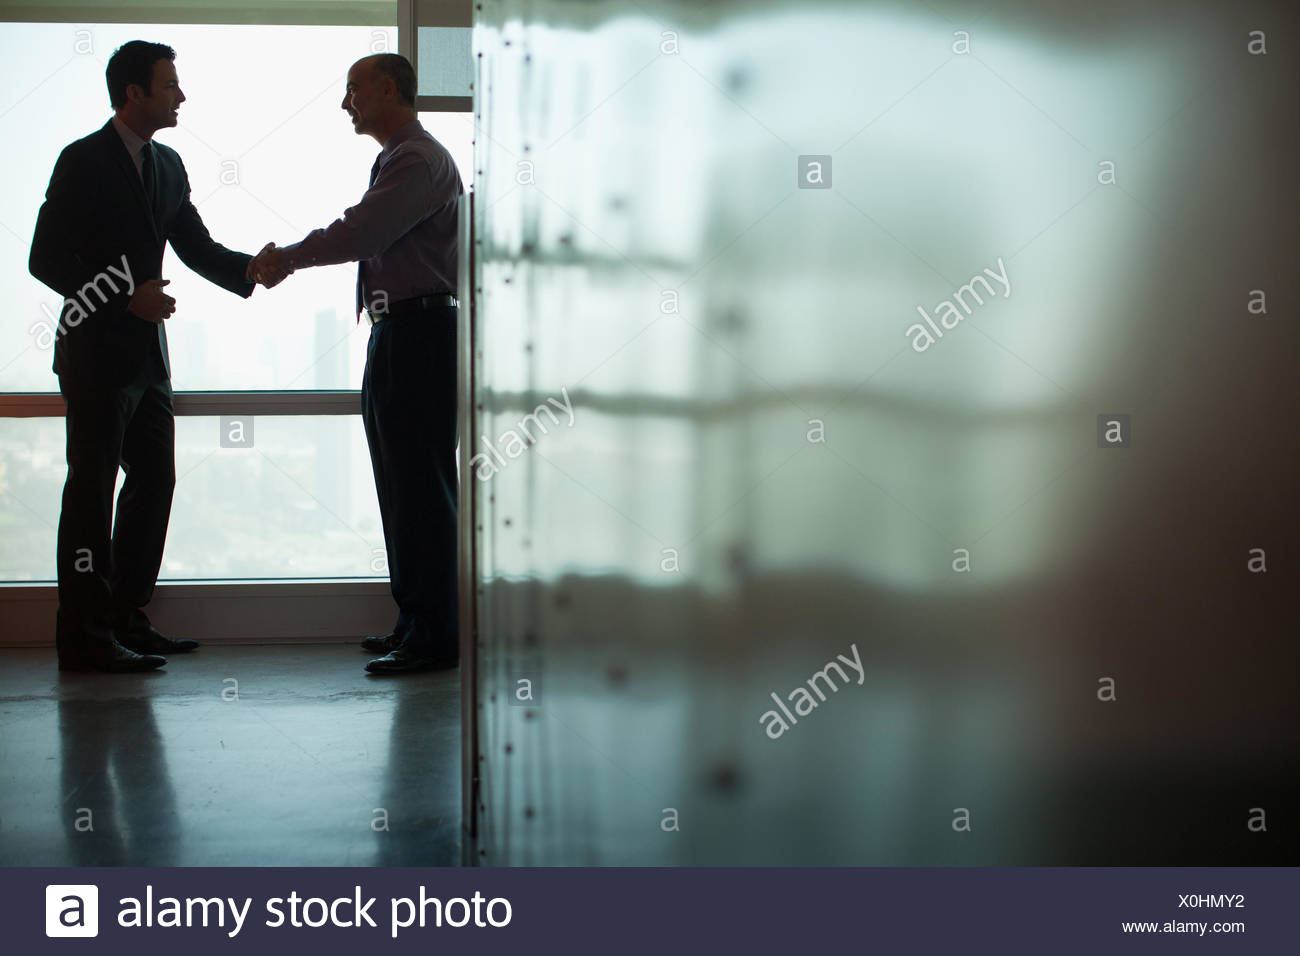 Businessmen shaking hands in office Photo Stock